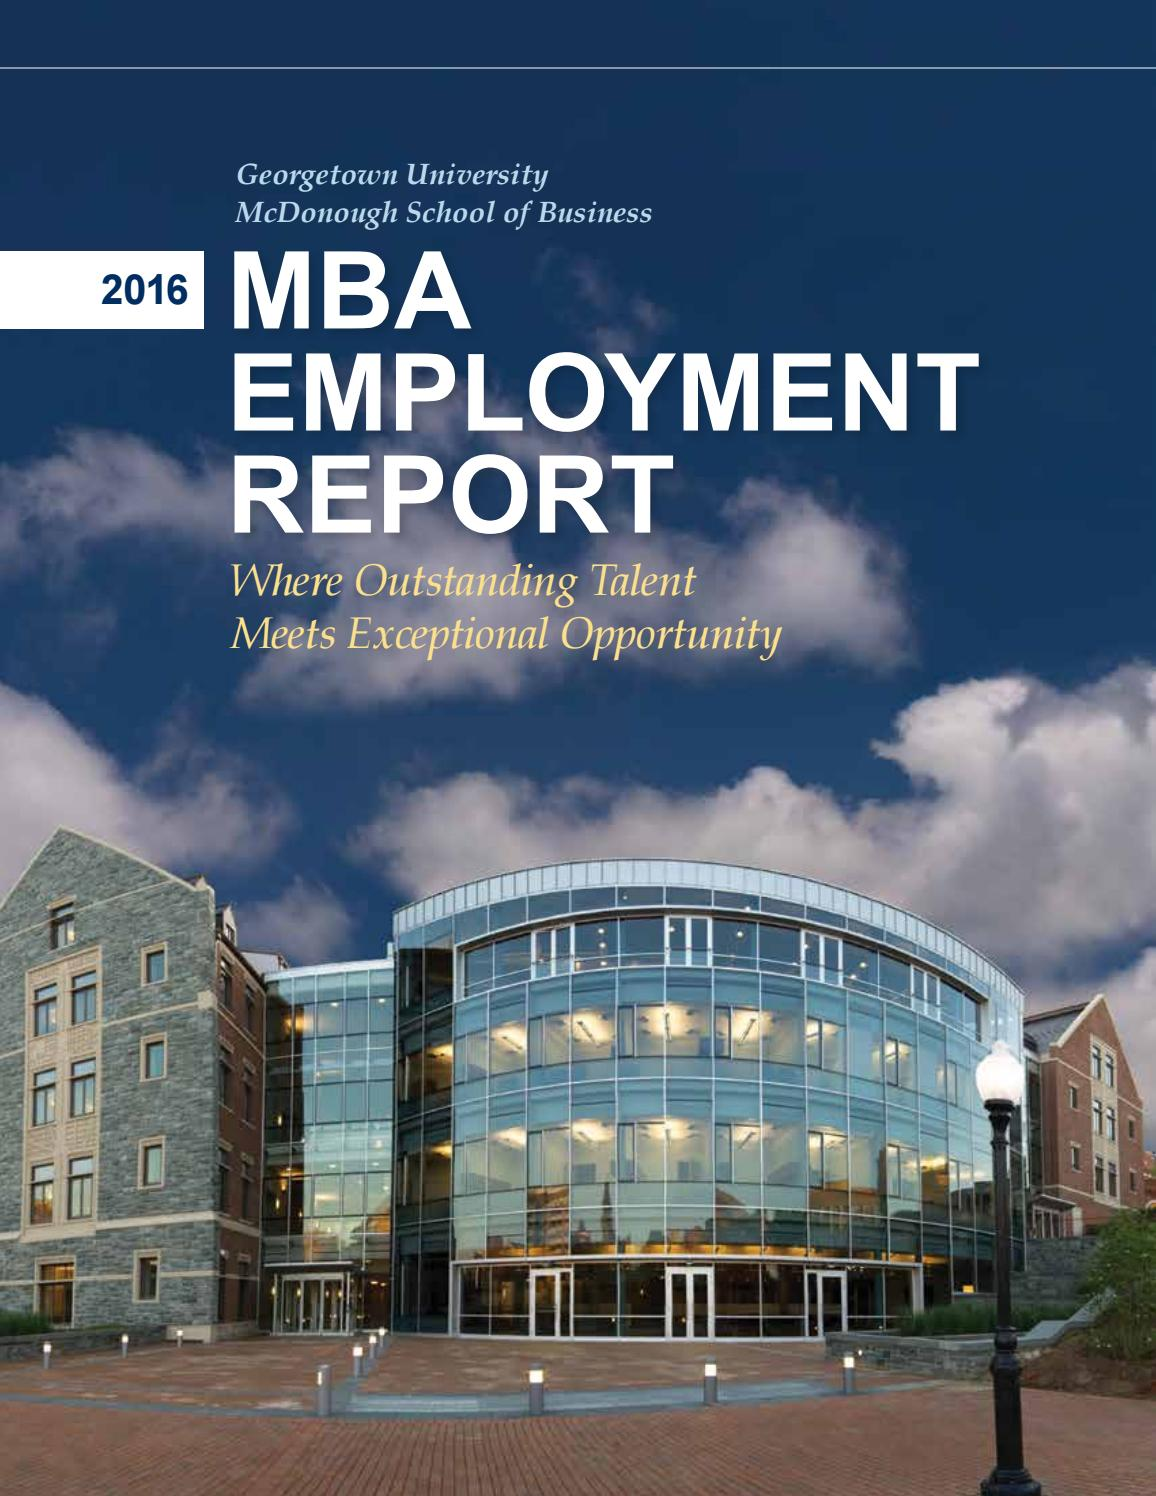 students the career experience georgetown university mba employment report 2016 5 months ago georgetownmcdonough